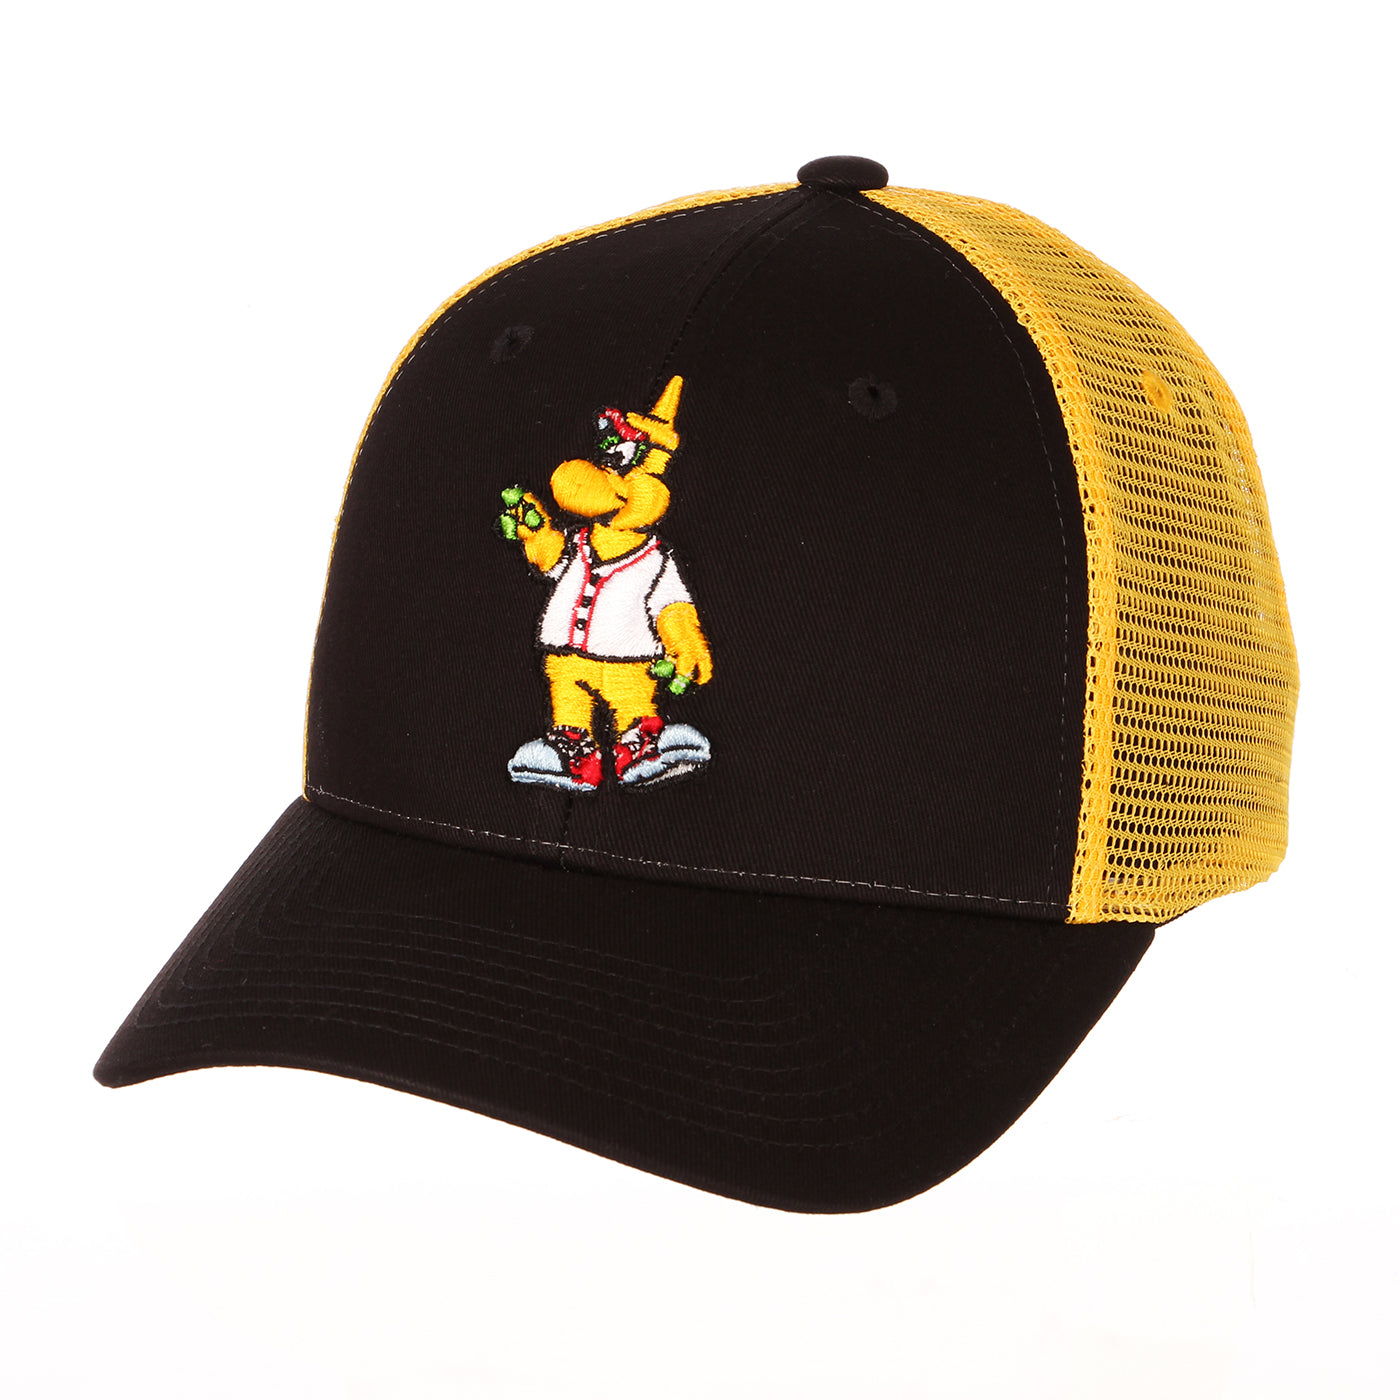 Chicago Dogs Zephyr Mascot Adjustable Trucker Hat - Black/Yellow - Chicago Dogs Team Store